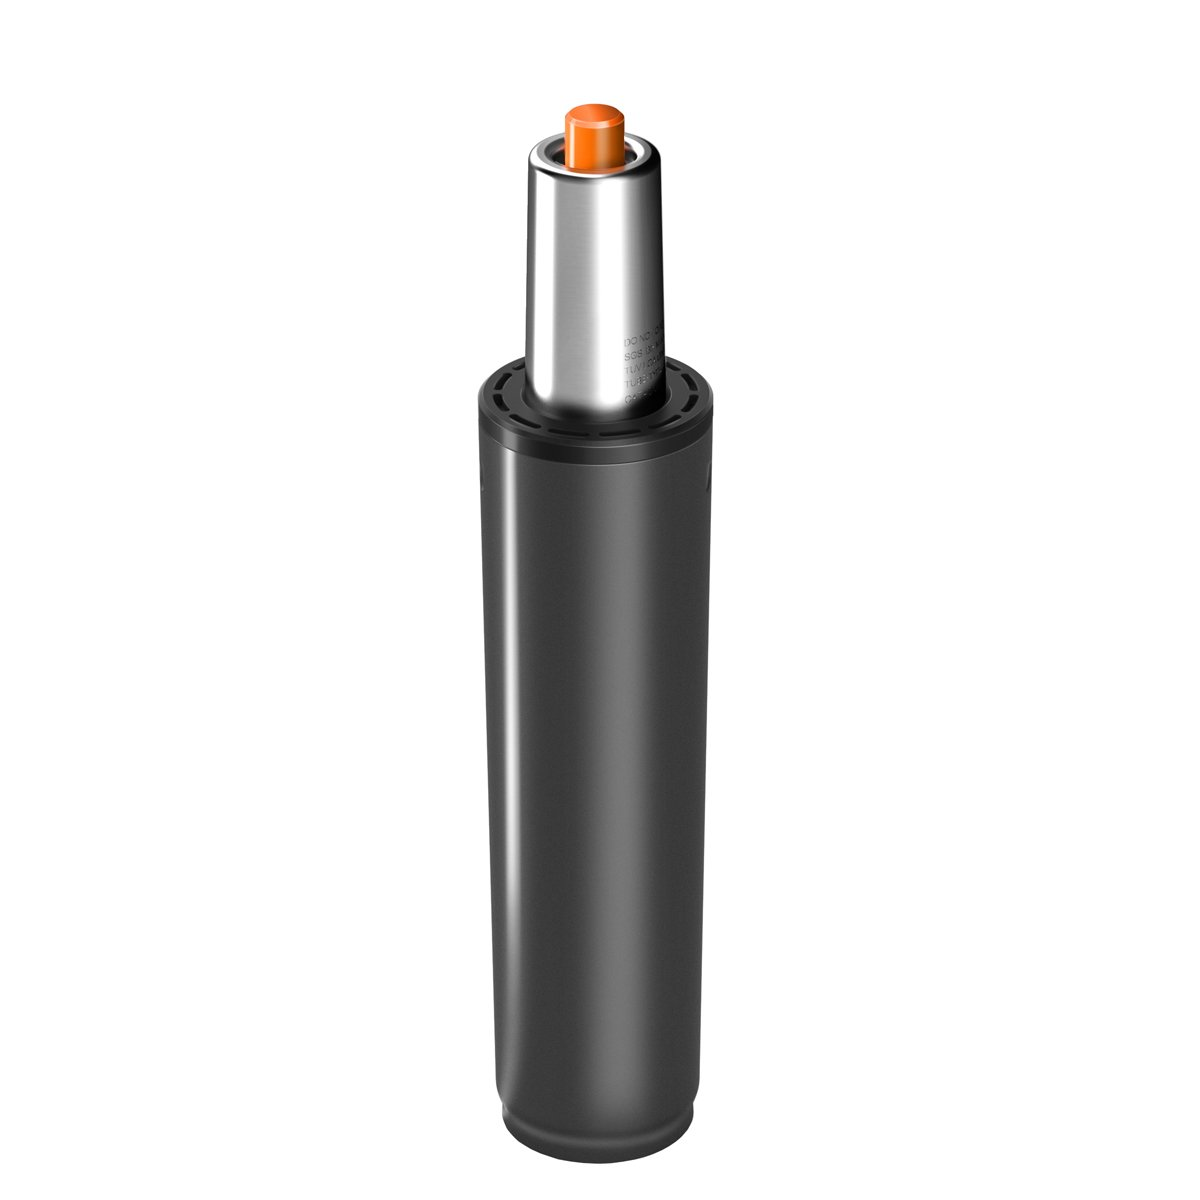 buy joboon heavy duty office chair gas lift cylinder replacement